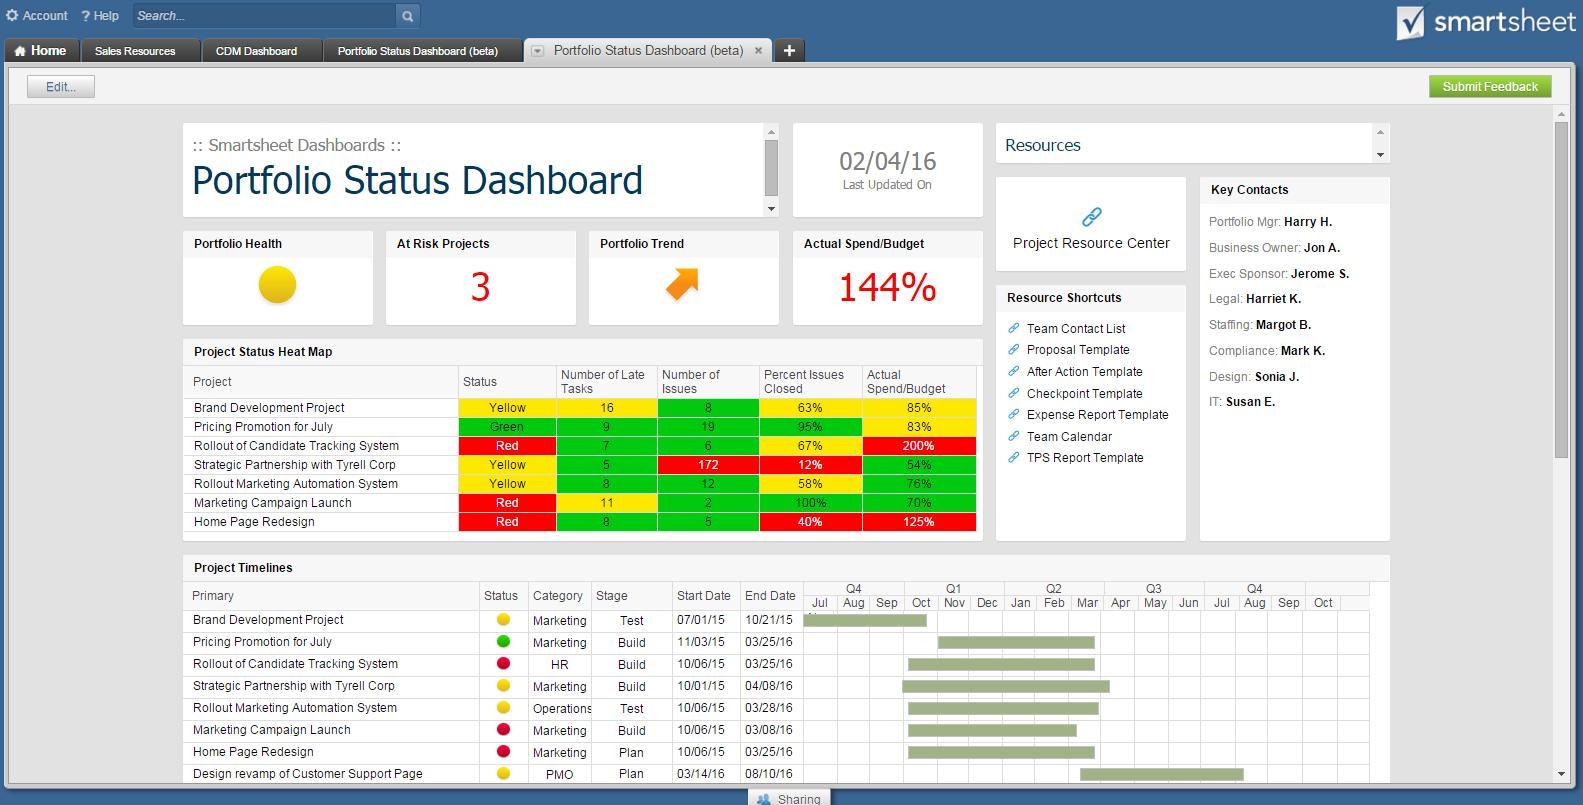 smartsheet dashboards smarterbusinessprocesses